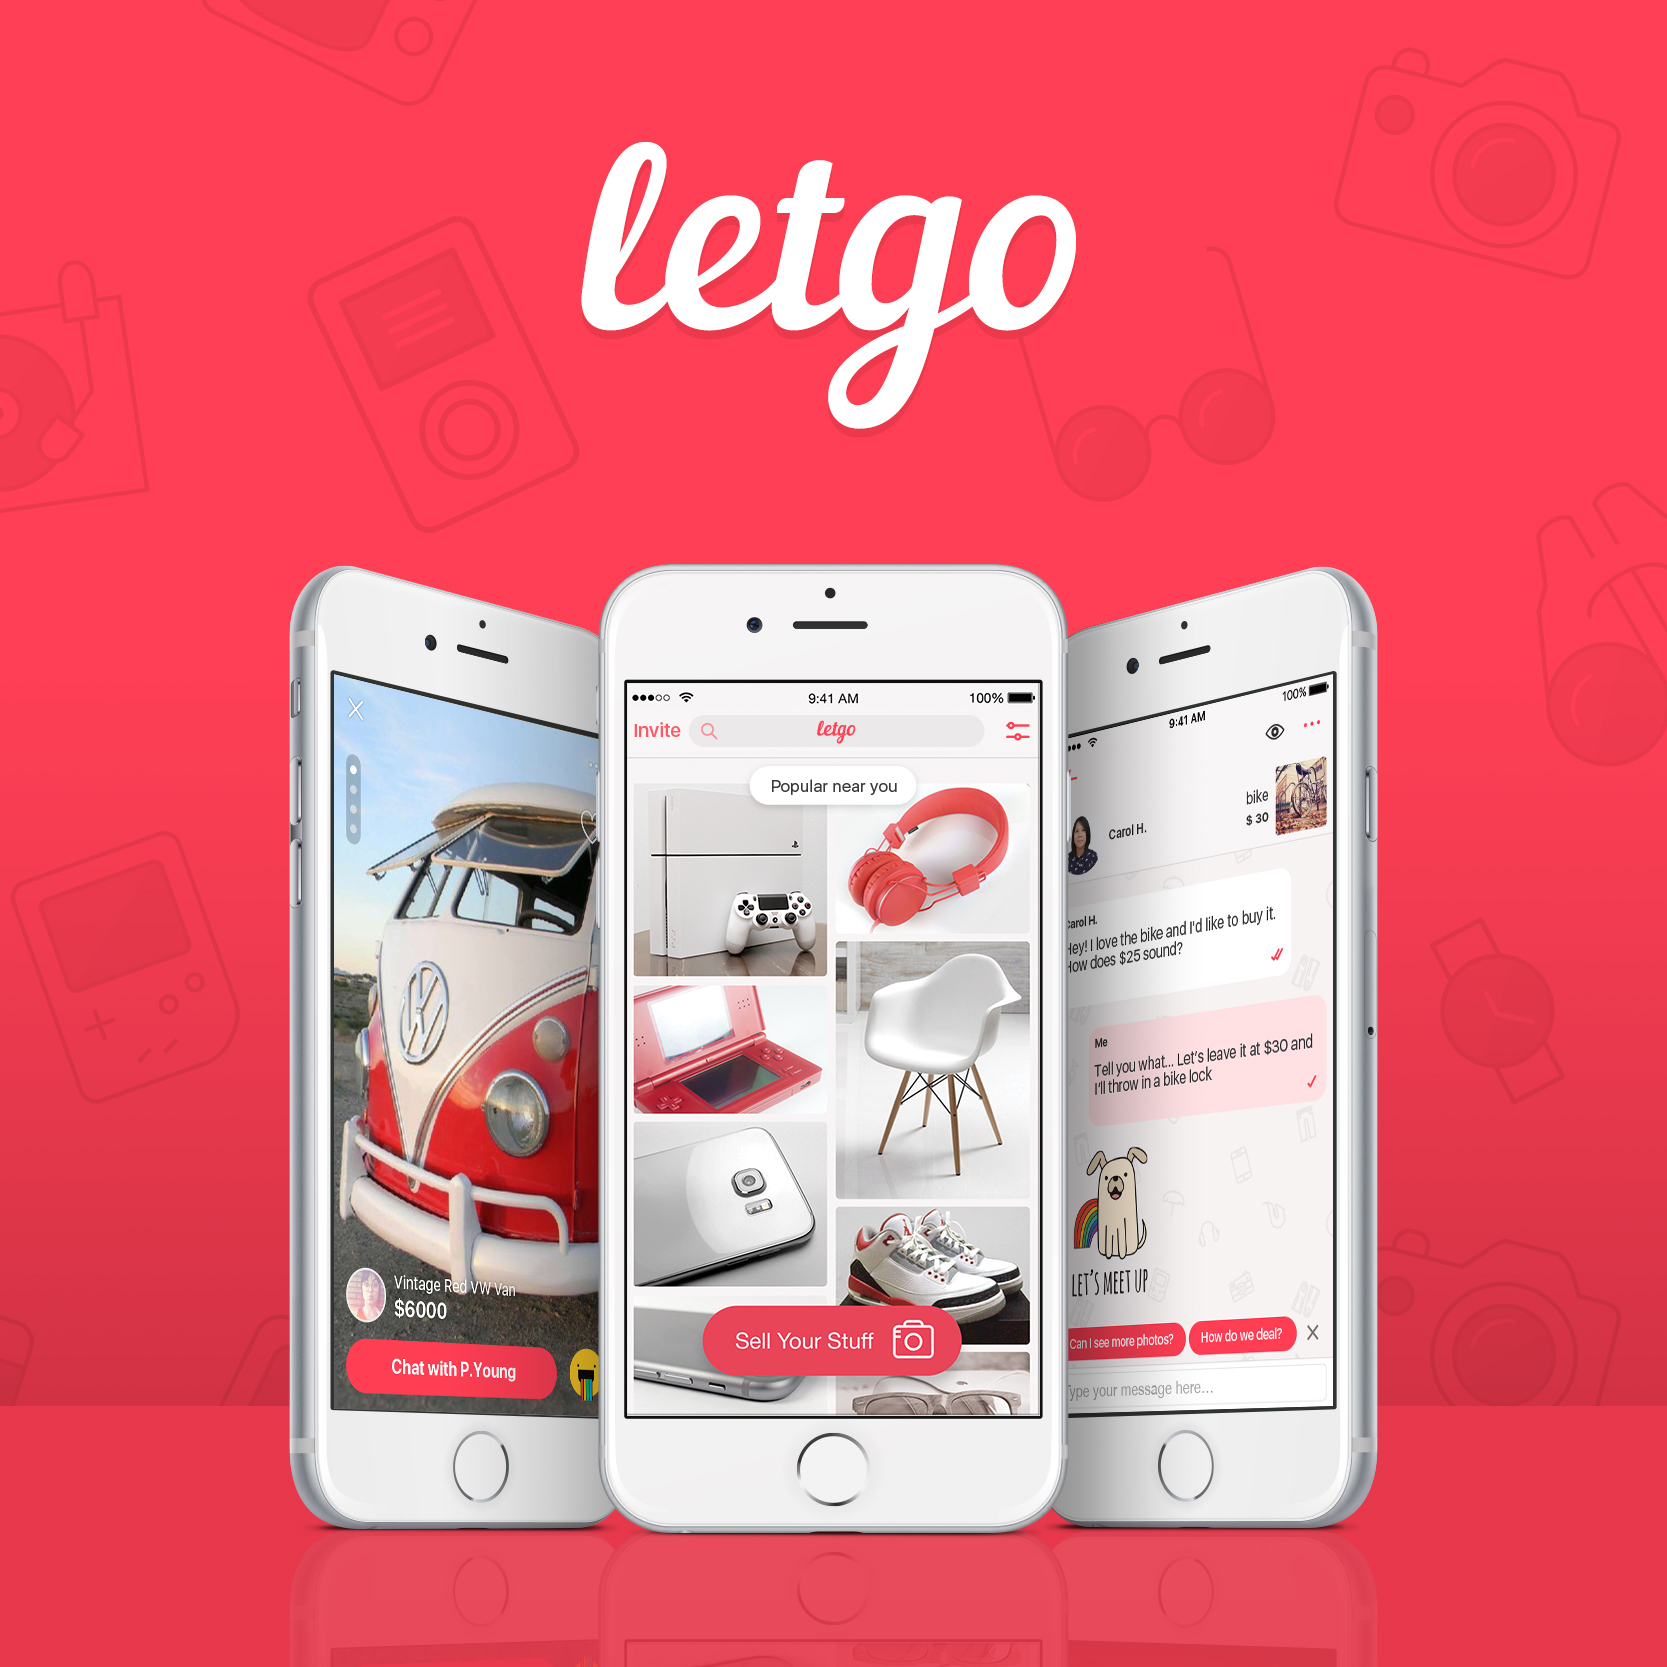 Letgo group